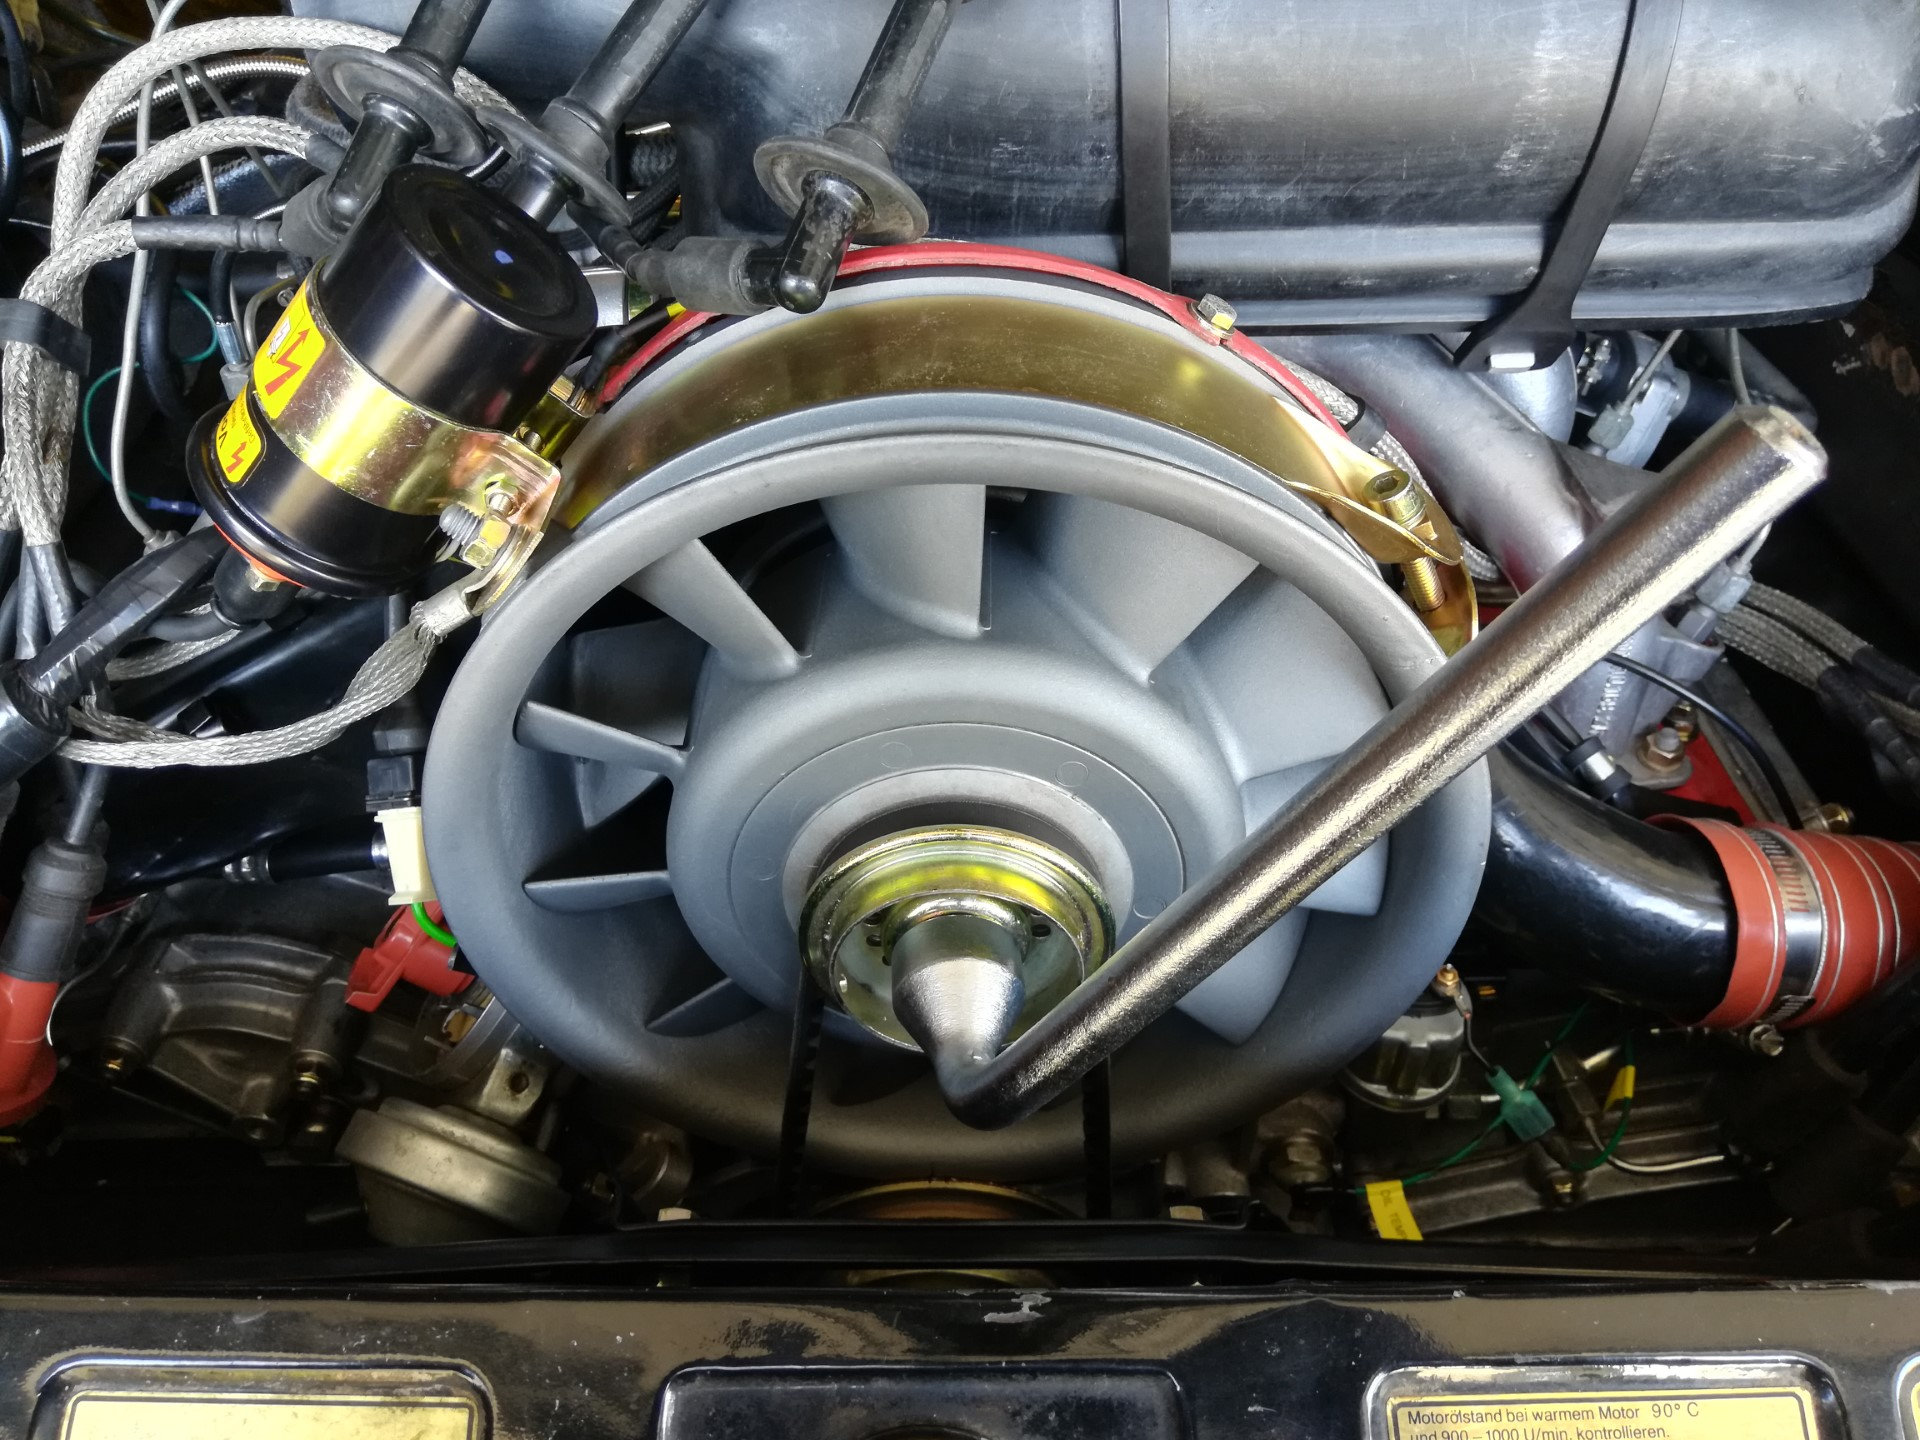 Air-cooled Porsche 911 fan pulley wrench